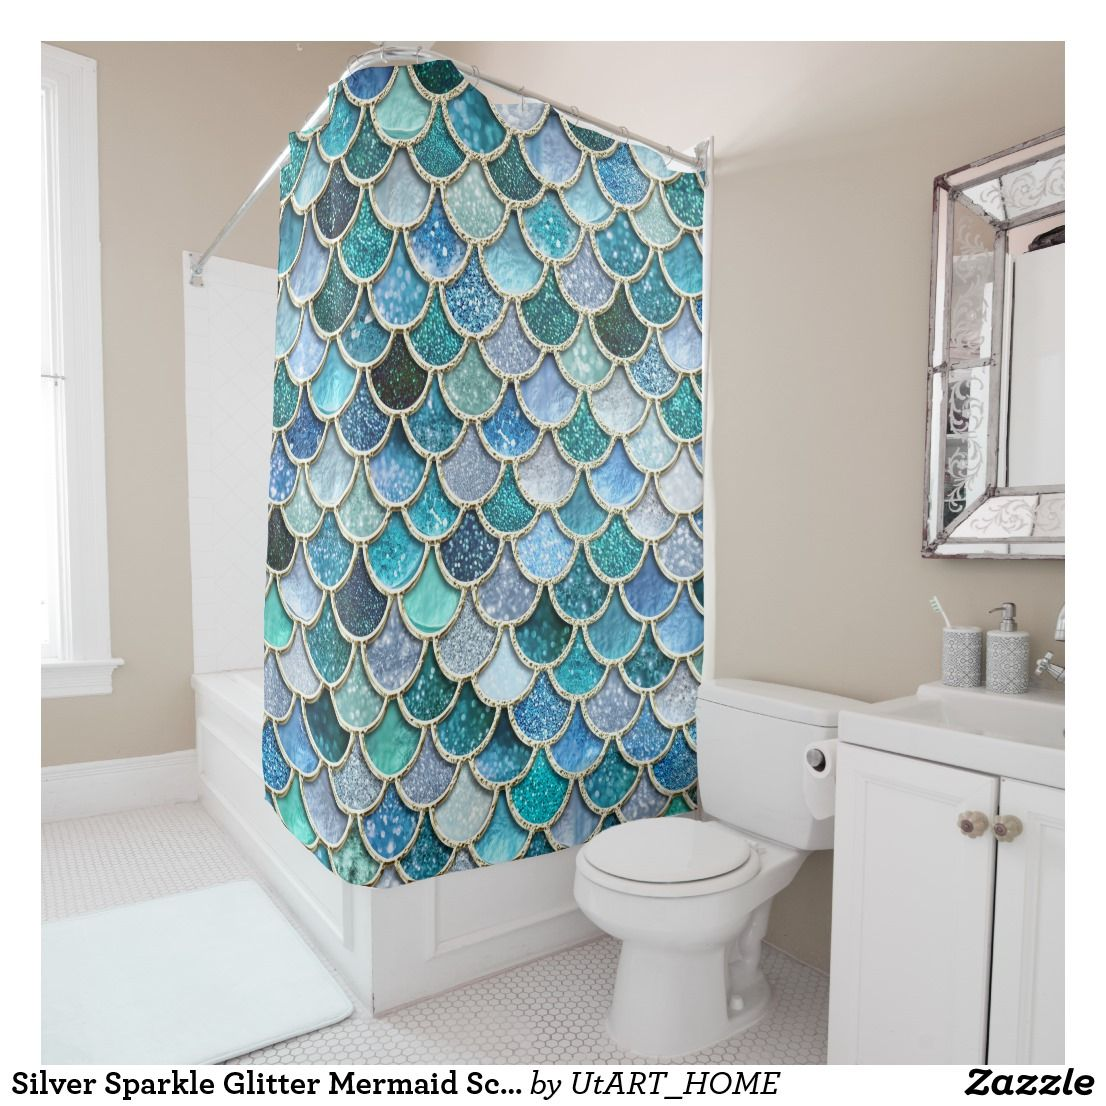 Mermaid Scale Shower Curtain Silver Sparkle Glitter Mermaid Scales Shower Curtain Zazzle